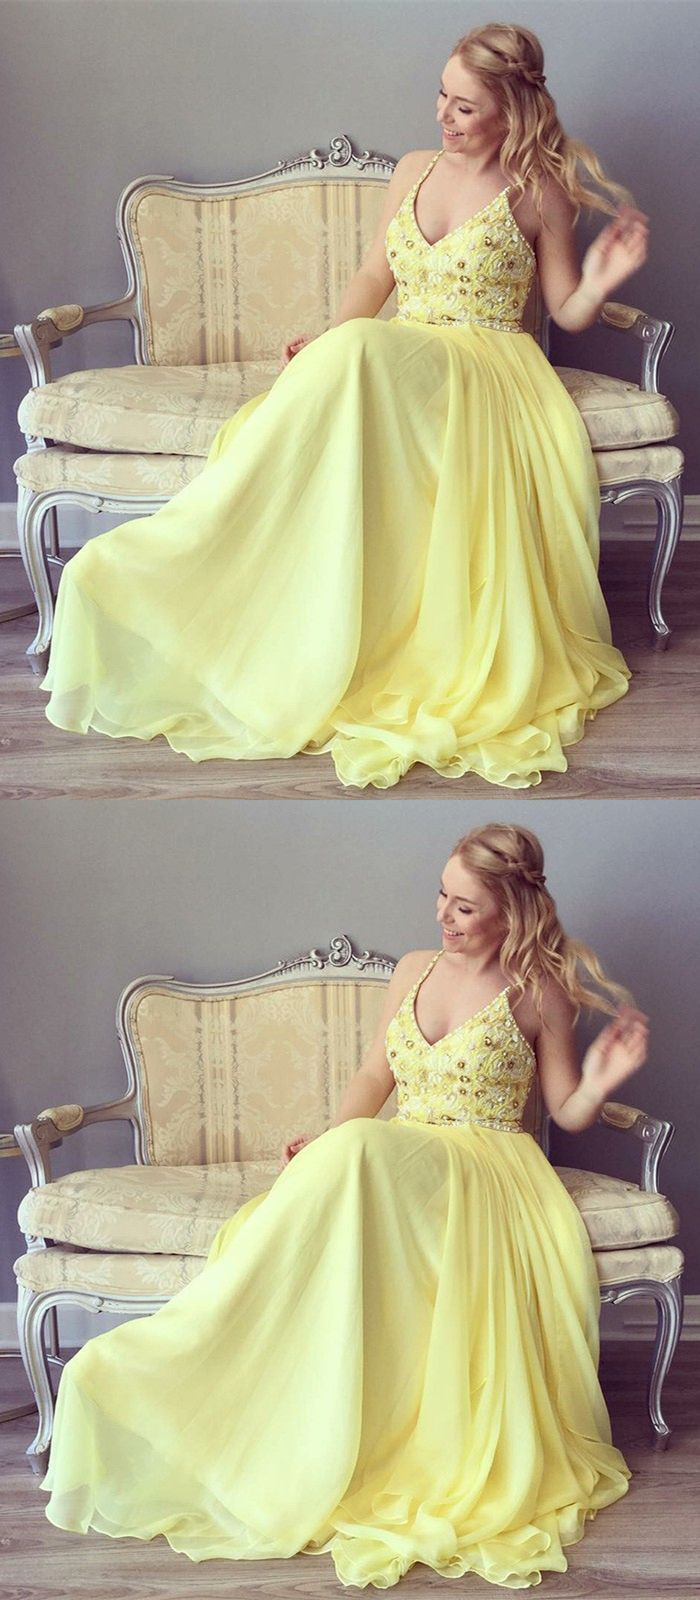 How to make prom dress at home prom dresses porm bridal